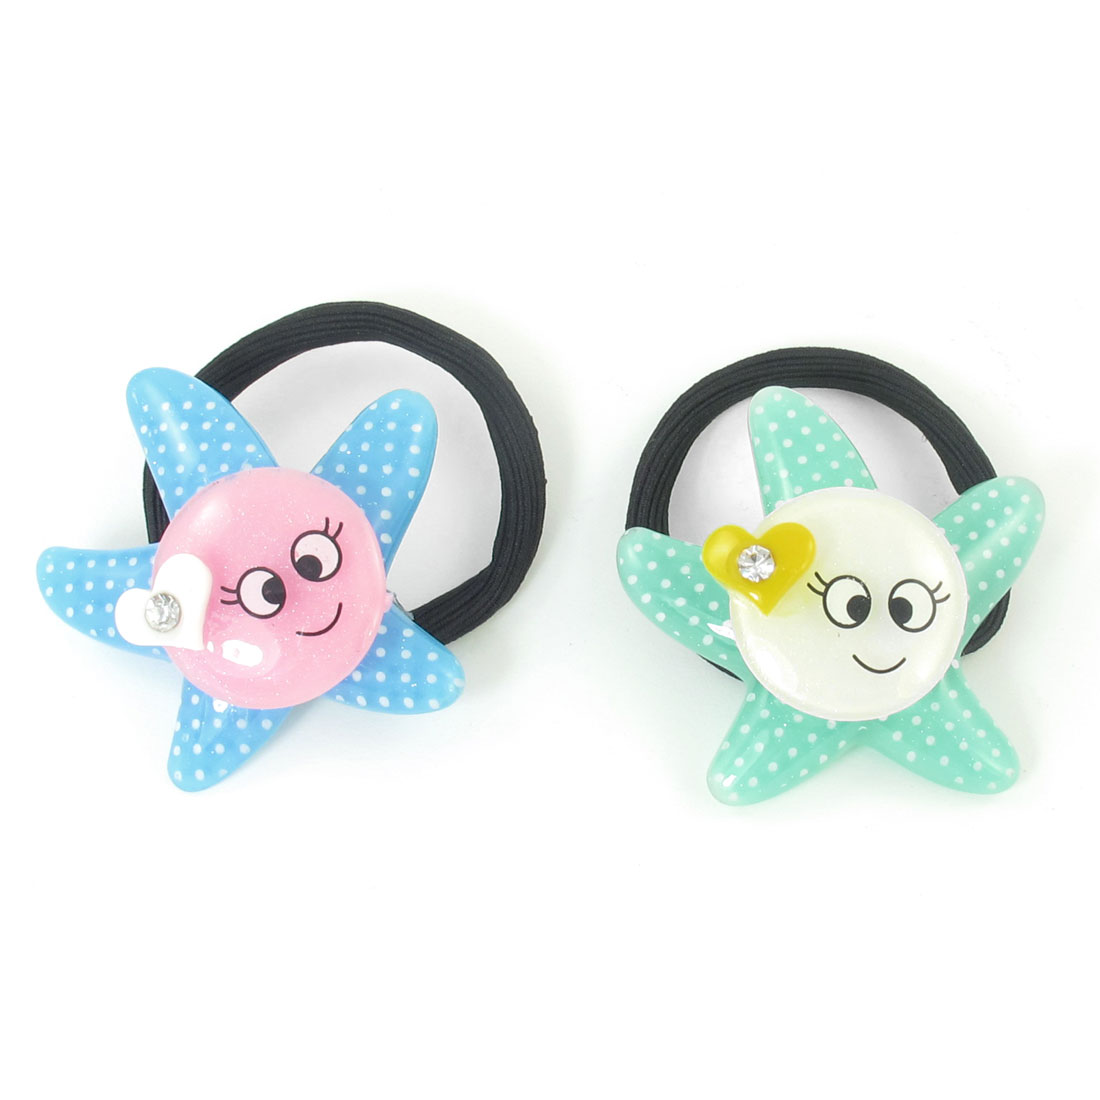 2pcs Round Smile Face Detail Hair Tie Stretchy Ponytail Holder for Girls